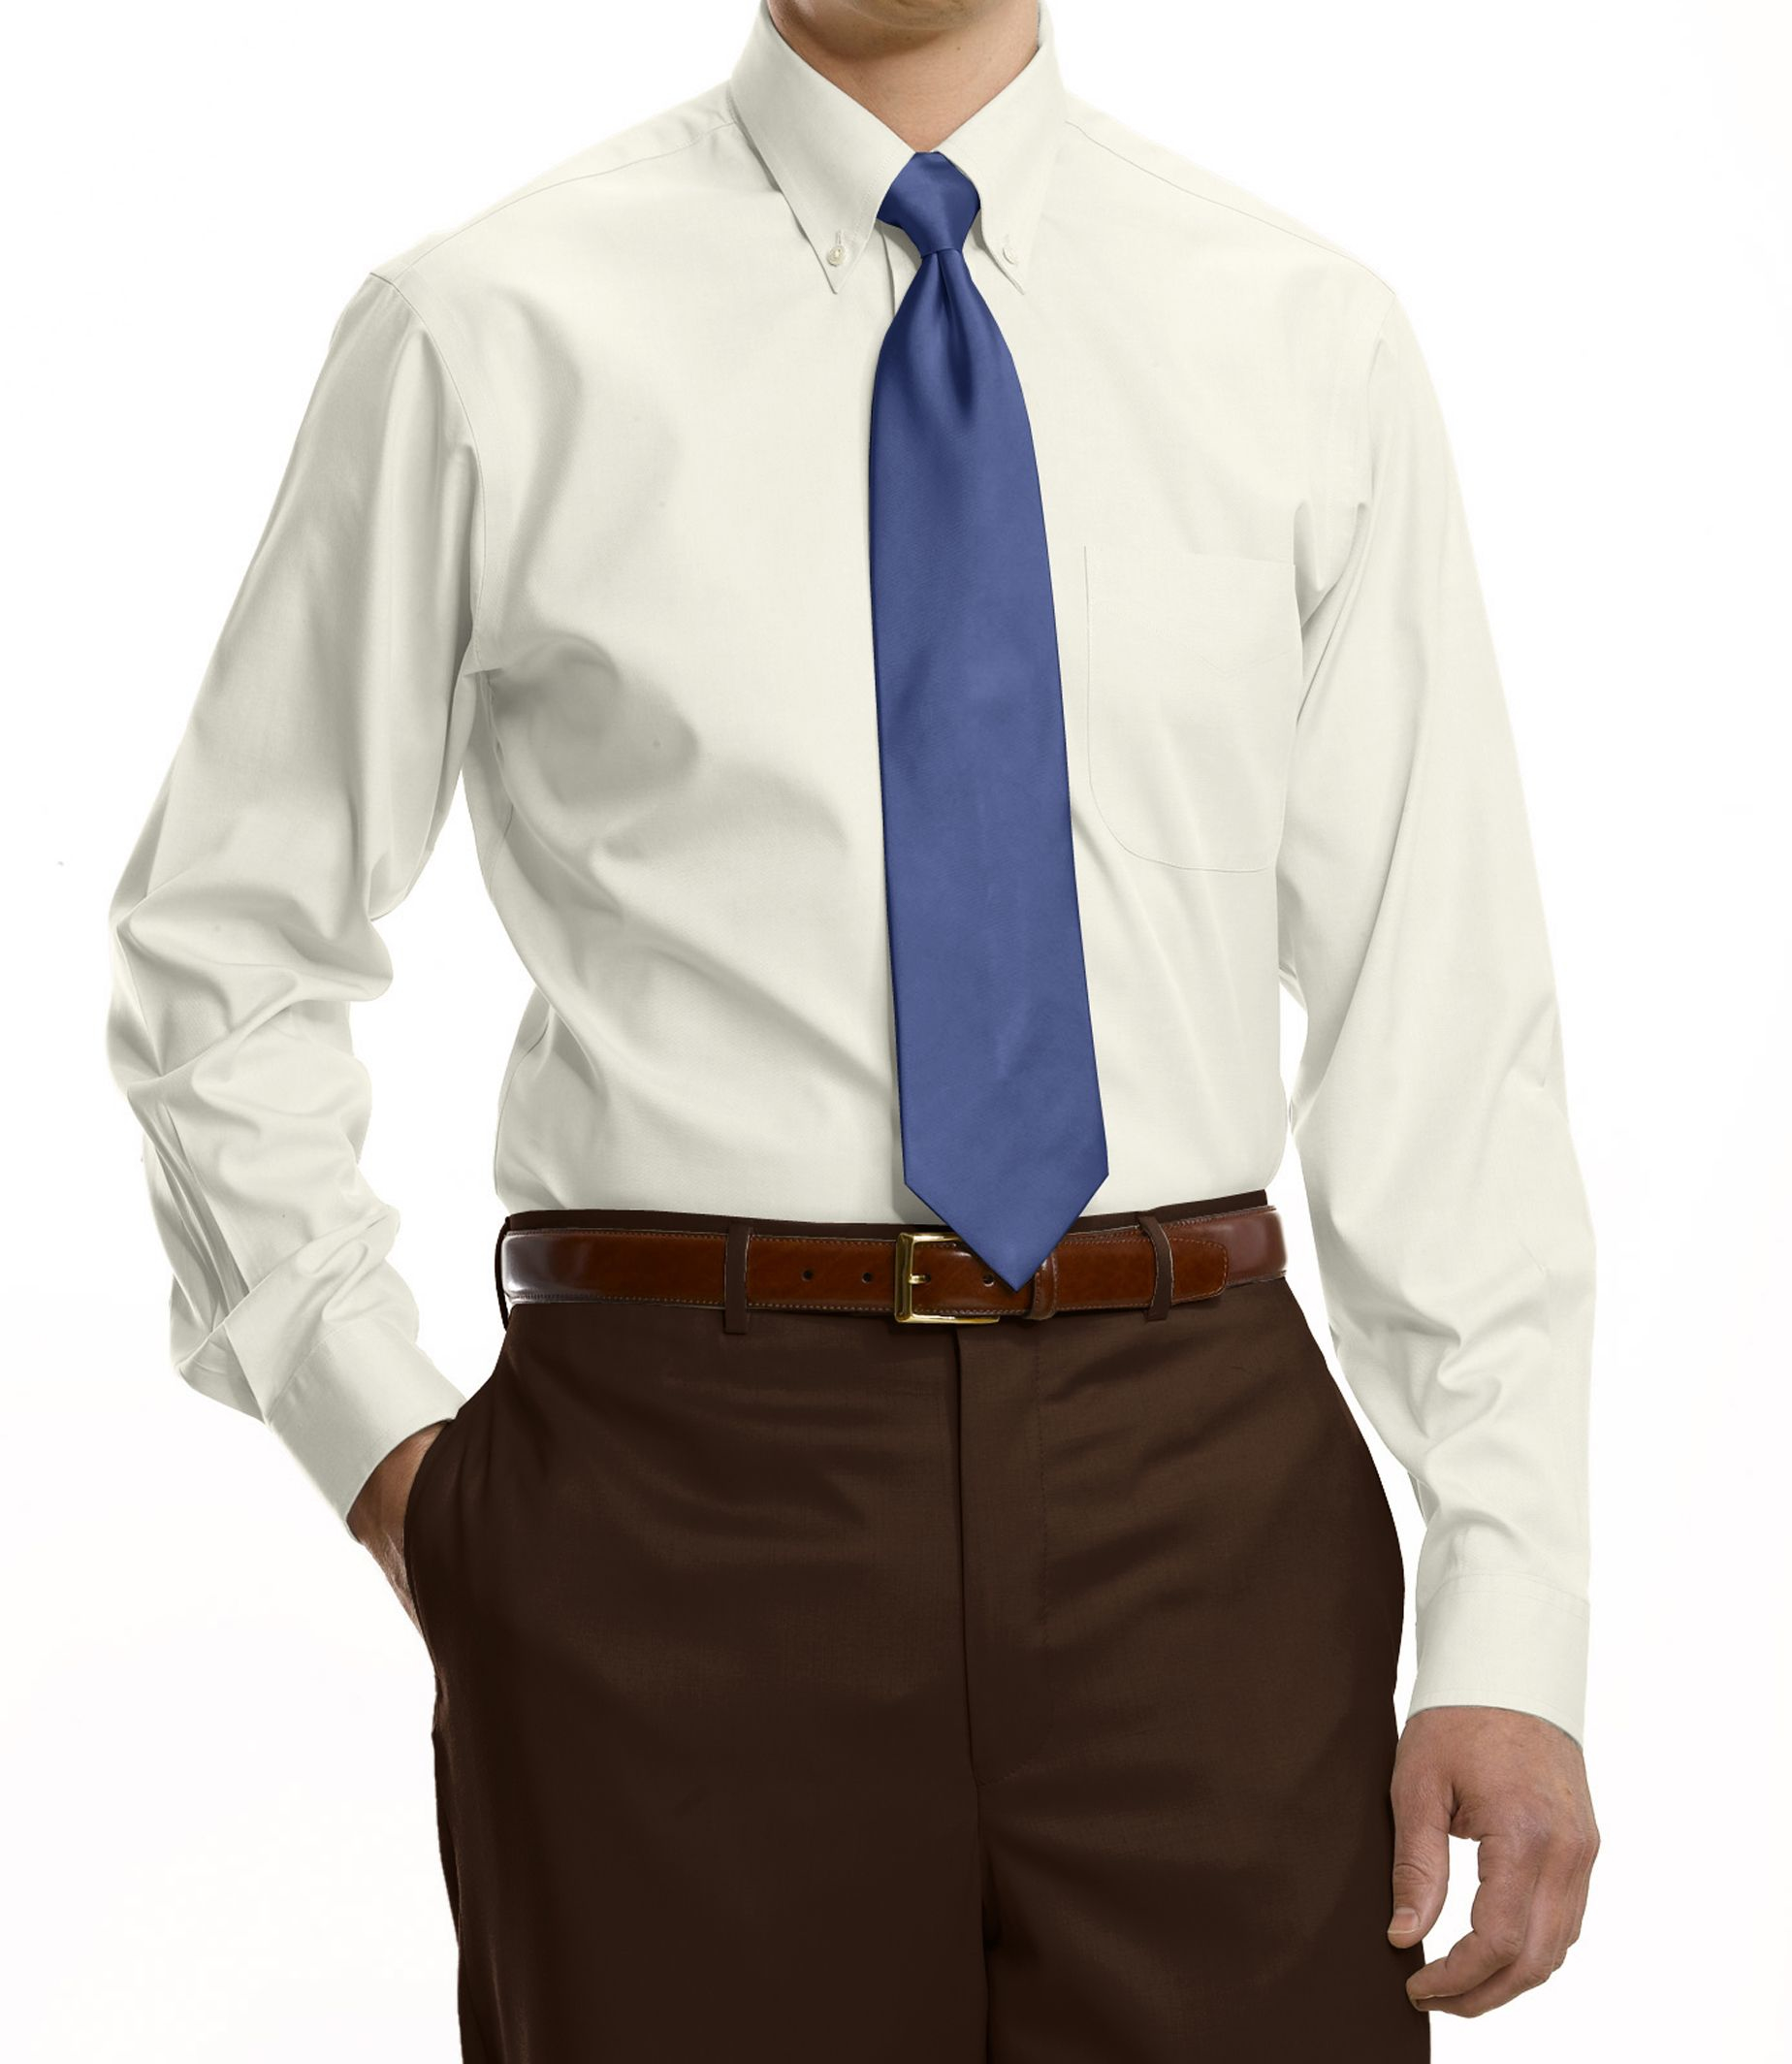 Jos a bank traveller collection tailored fit button down for Tailored fit dress shirts